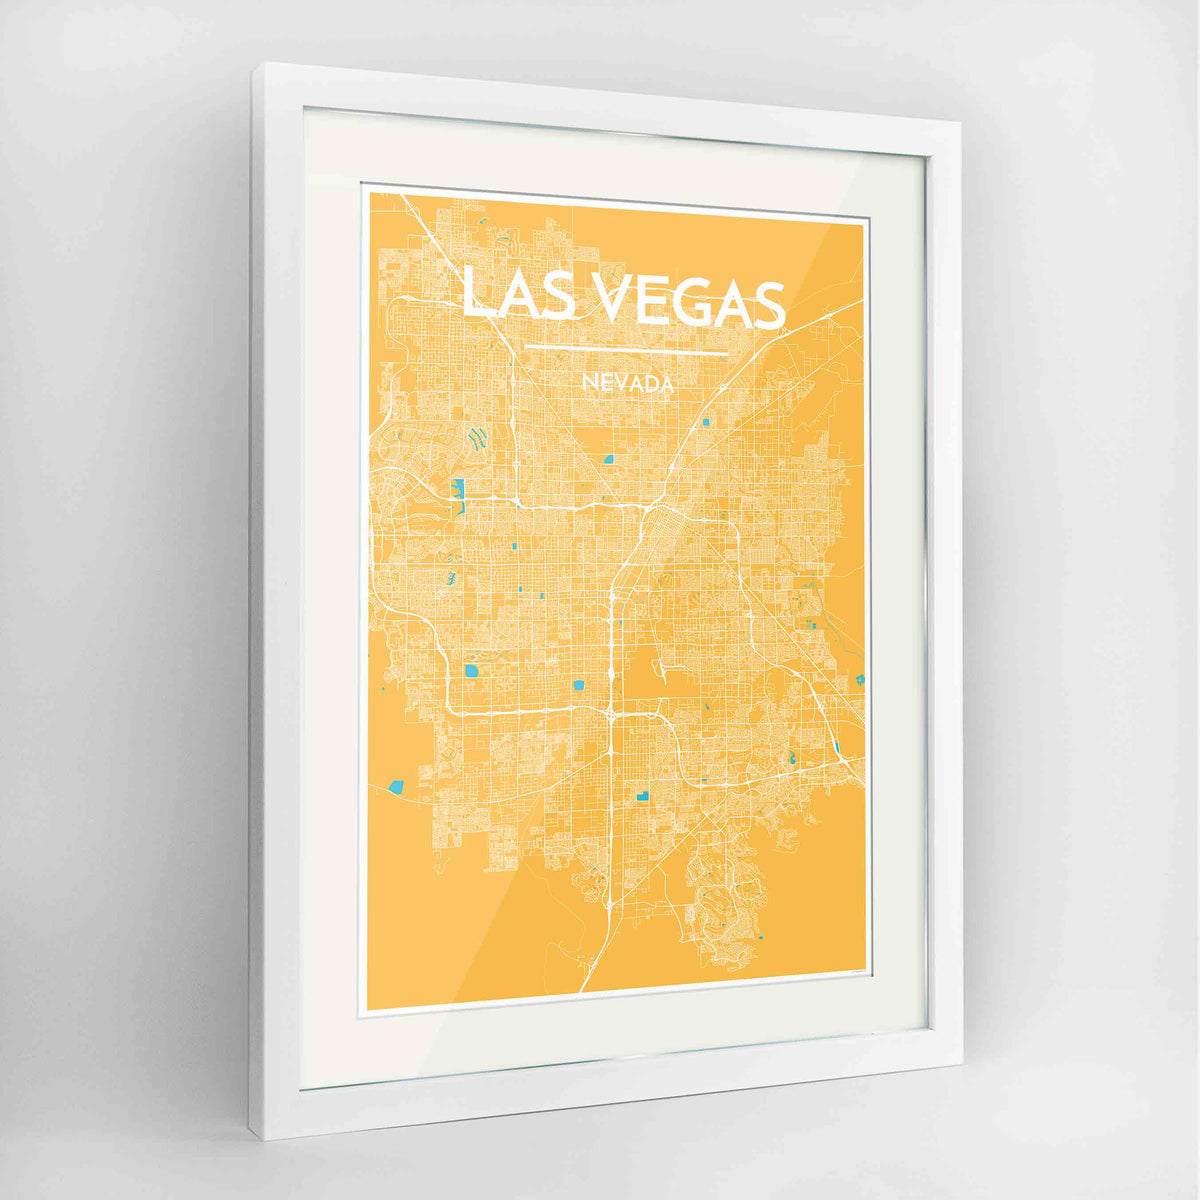 "Framed Las Vegas Map Art Print 24x36"" Contemporary White frame Point Two Design Group"